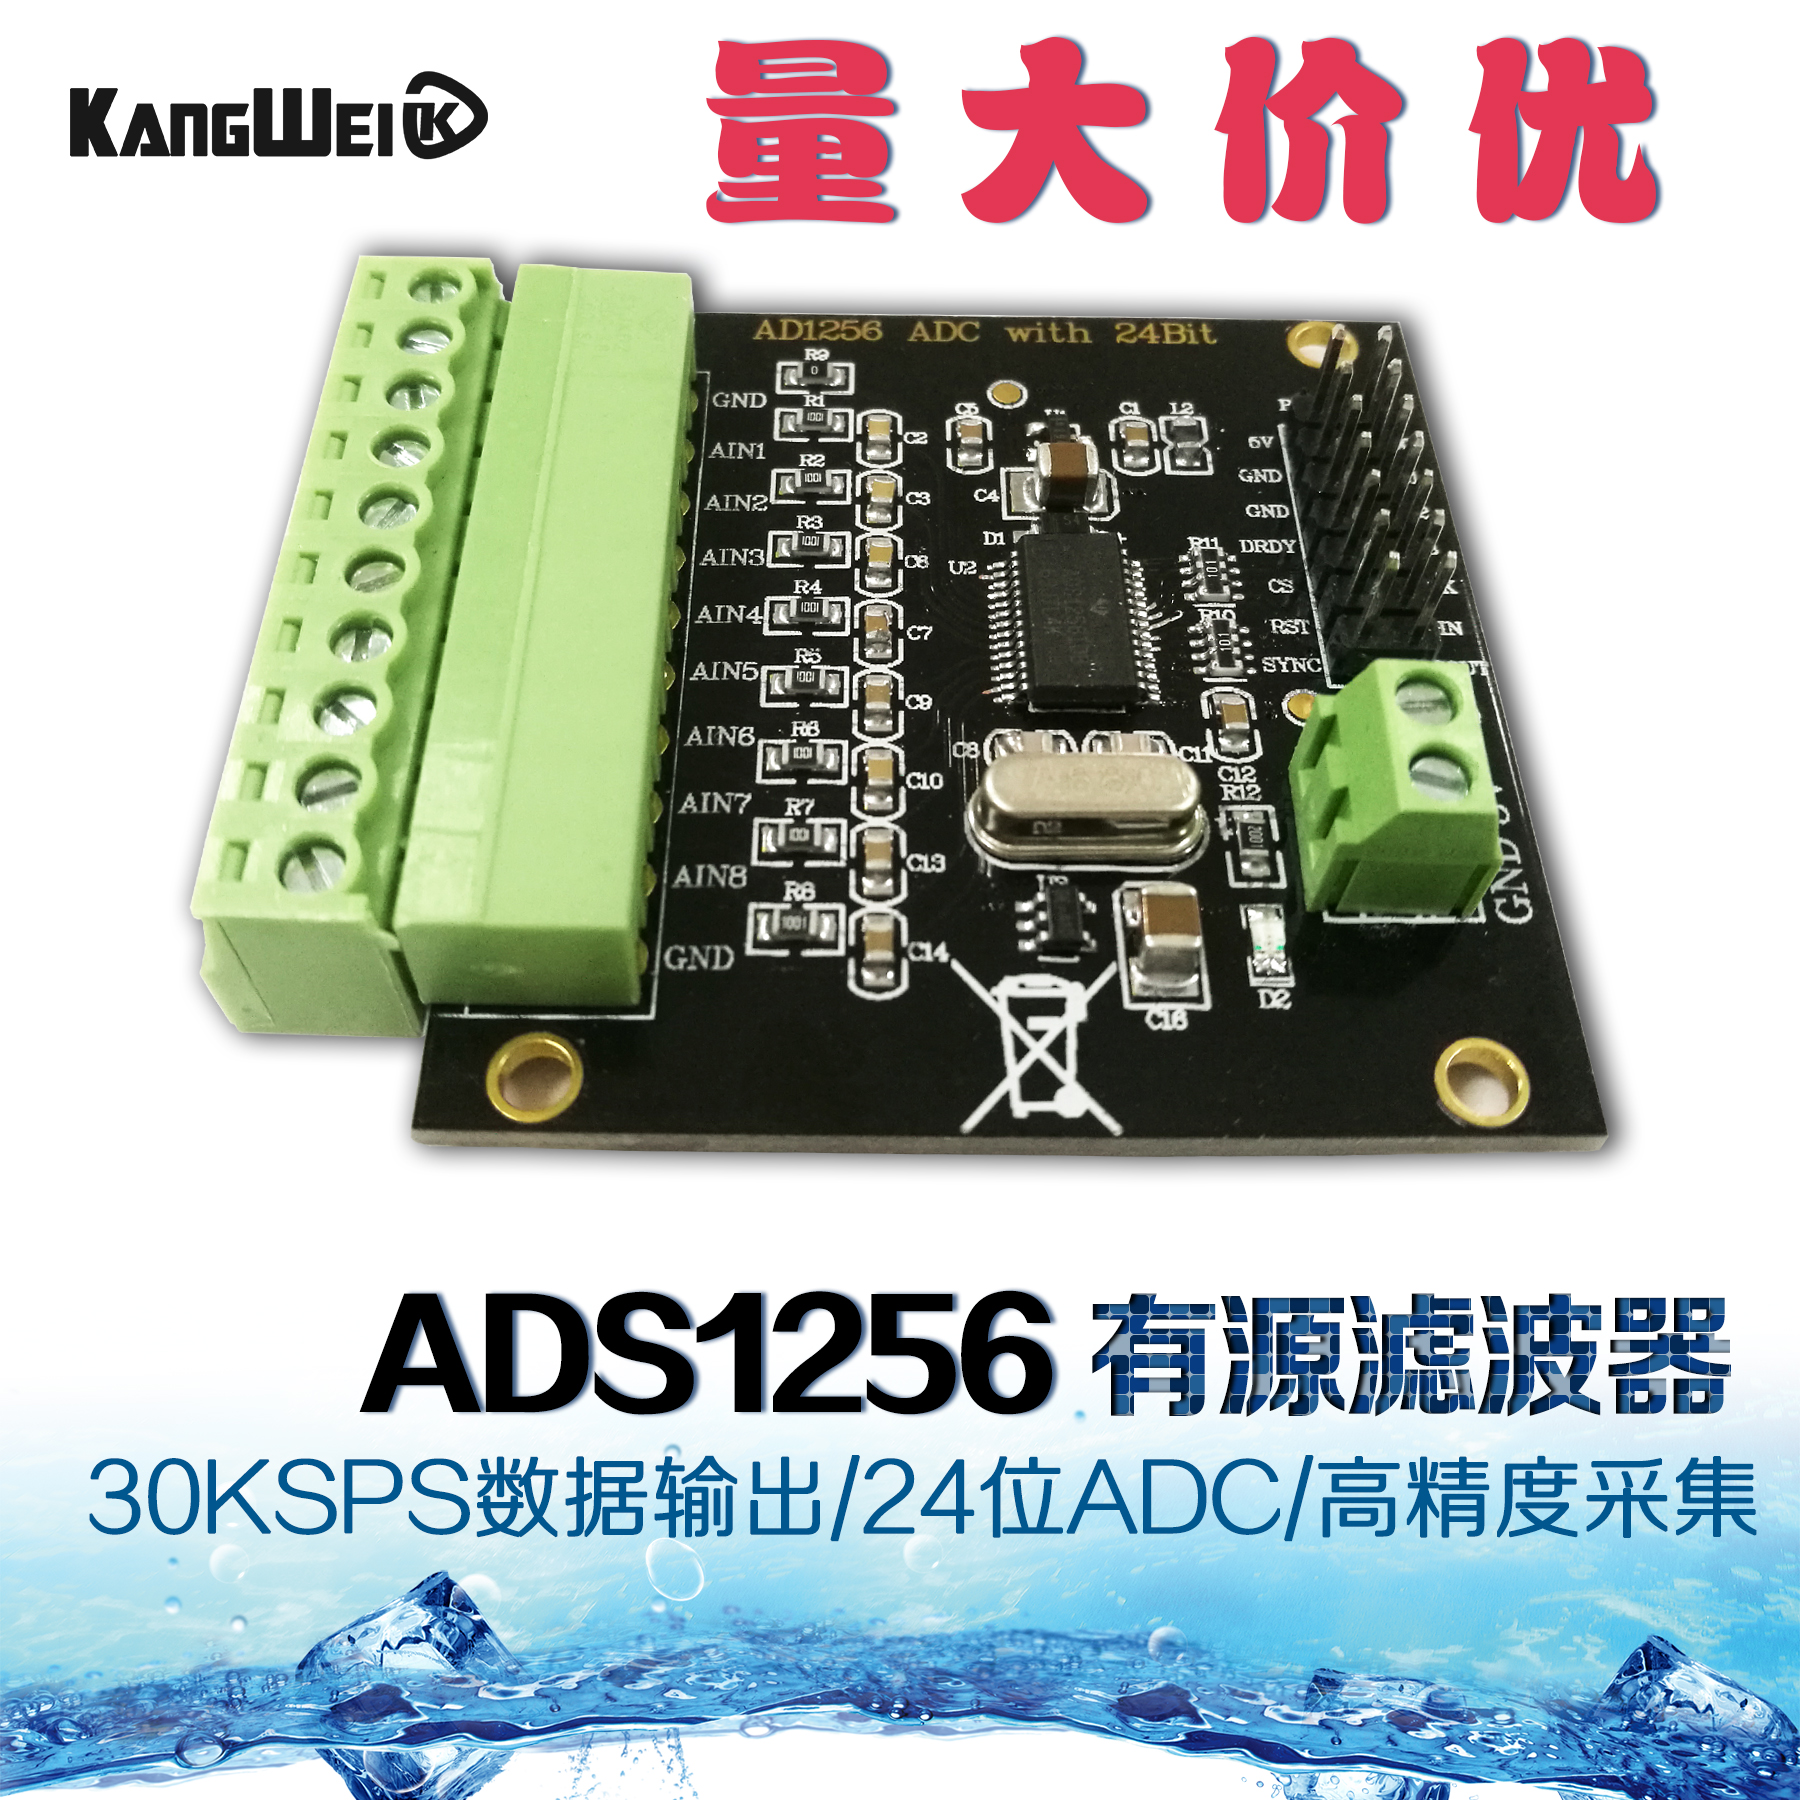 ADS1256 24 bit ADC AD module high precision ADC acquisition data acquisition card analog to digital converter